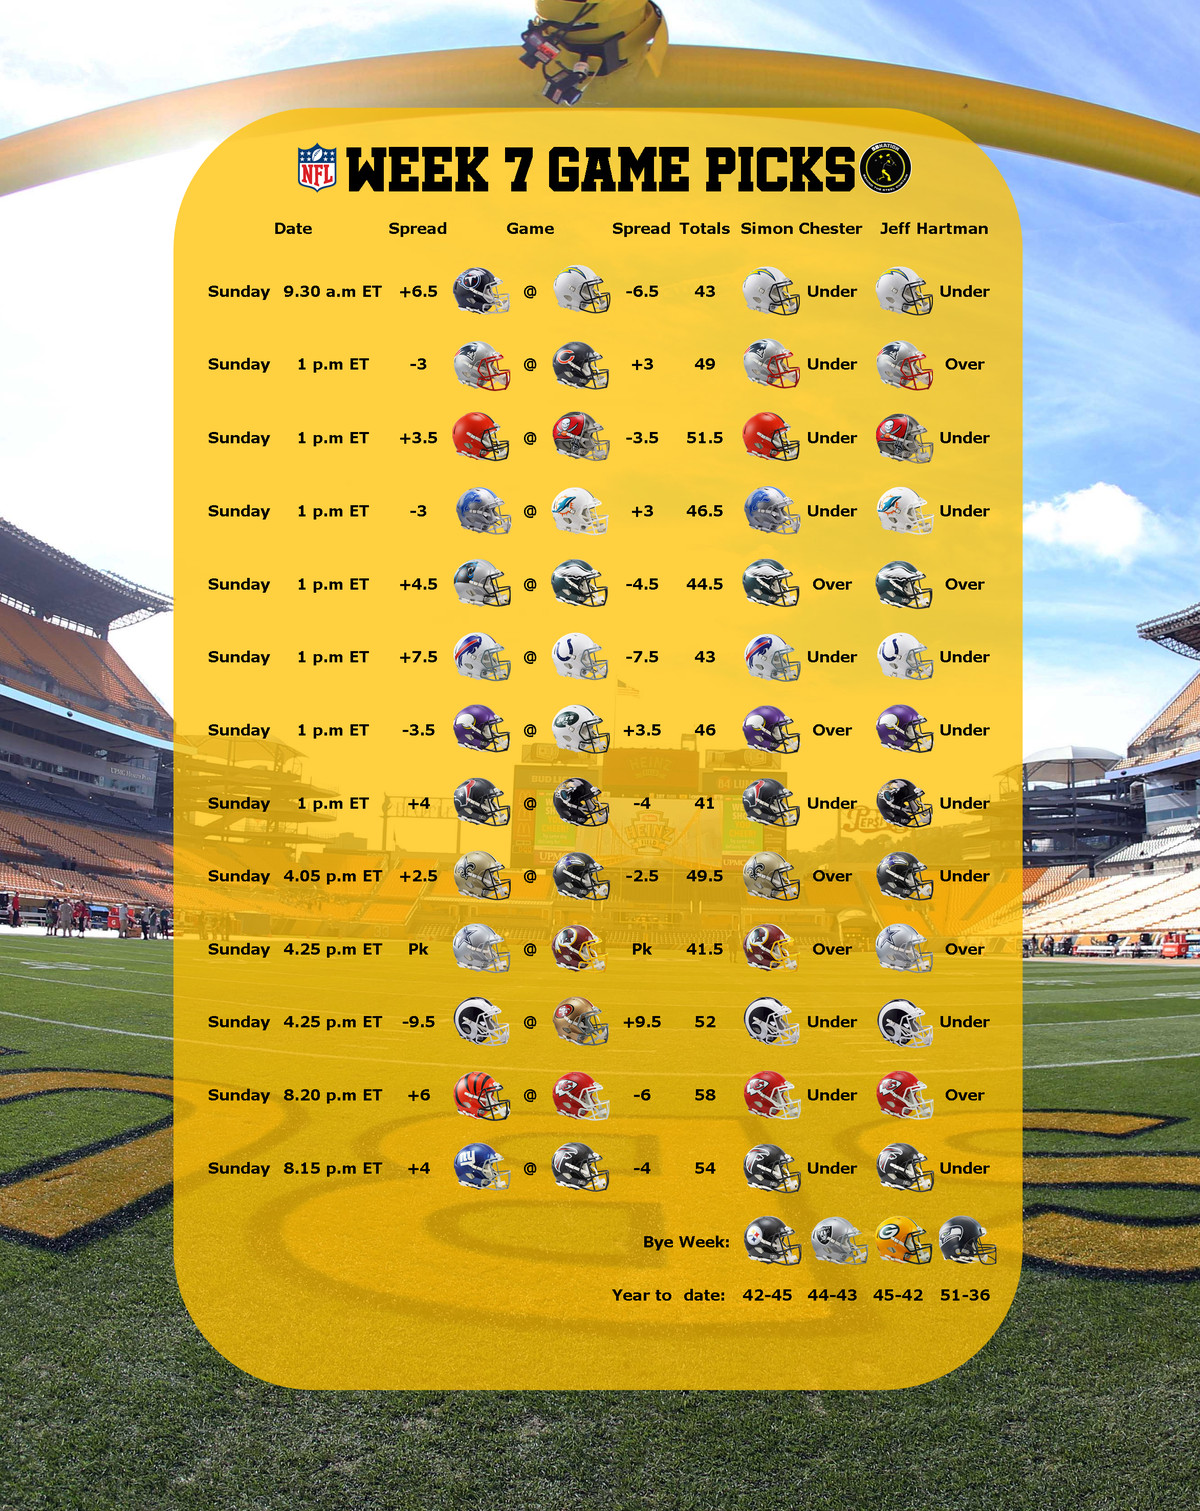 Nfl football betting lines week 7 r for sports betting